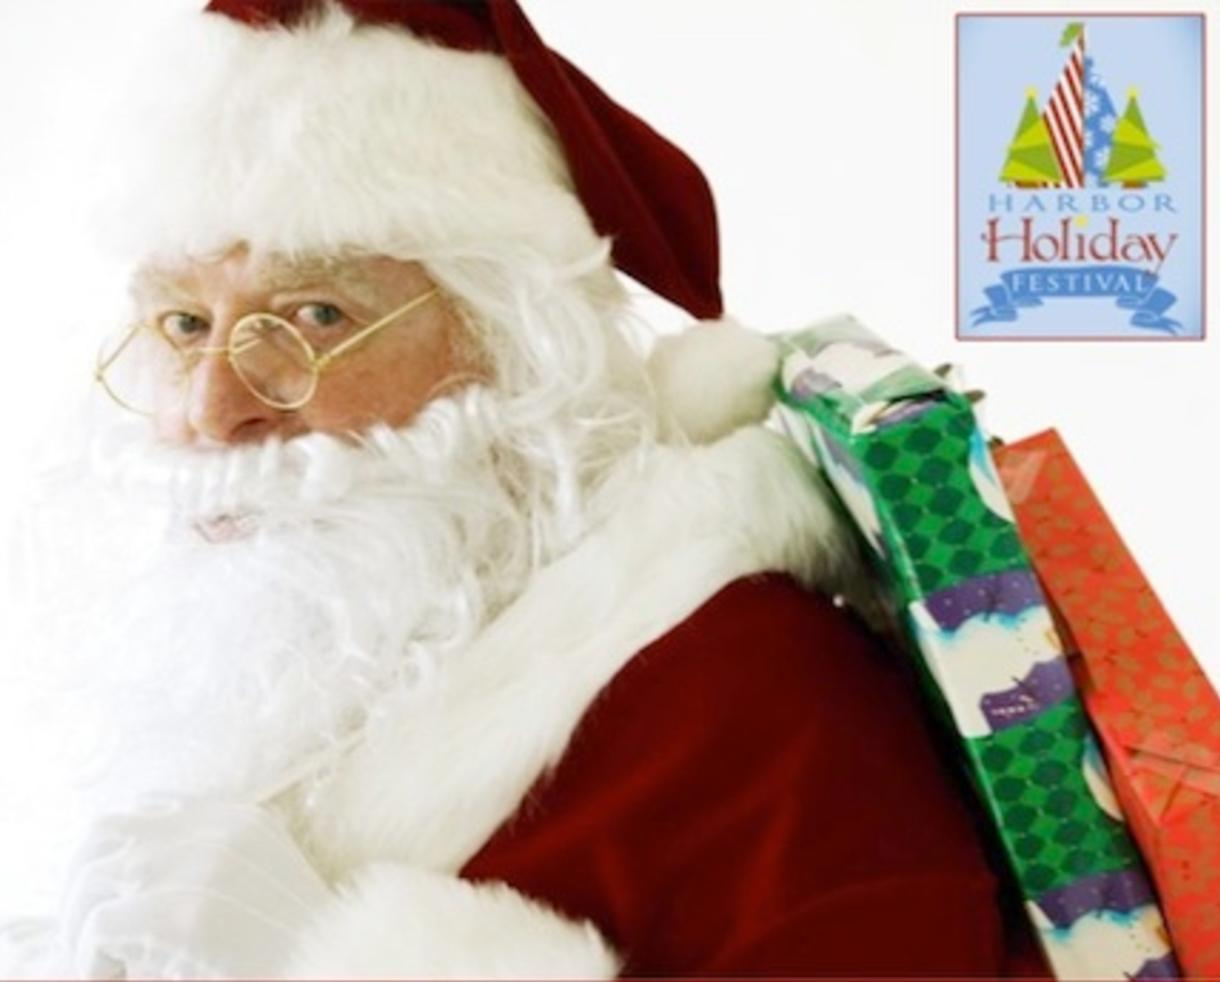 $14.99 Family Package to National Harbor Holiday Festival: Includes Admissions, Hot Chocolates, Souvenir Bag, and Adult Tasting Flight - Nov. 30-Dec. 2 (51% Off)